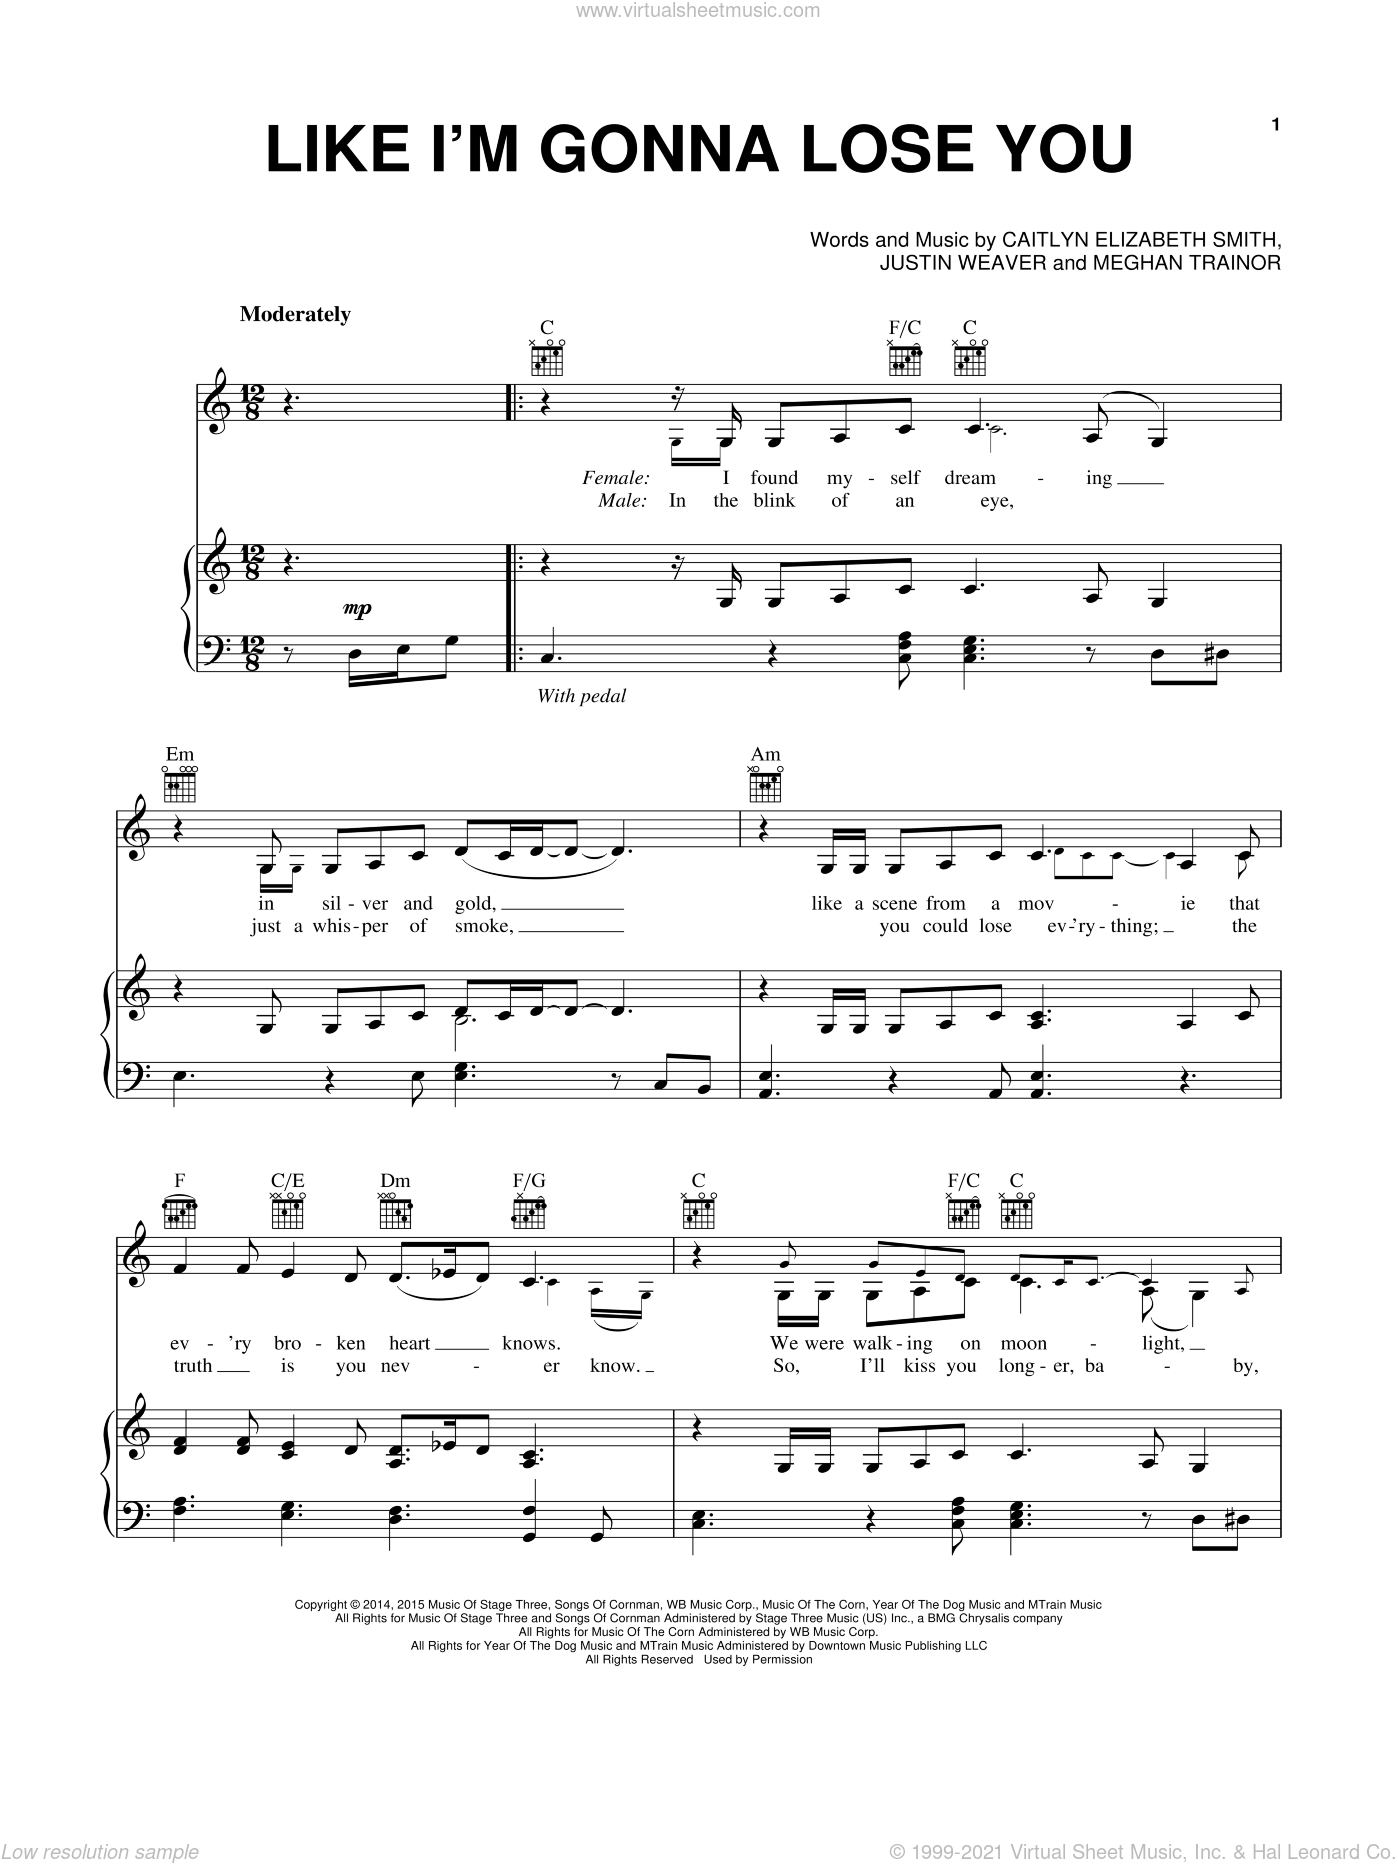 Like I'm Gonna Lose You sheet music for voice, piano or guitar by Meghan Trainor, Caitlyn Elizabeth Smith and Justin Weaver, intermediate skill level